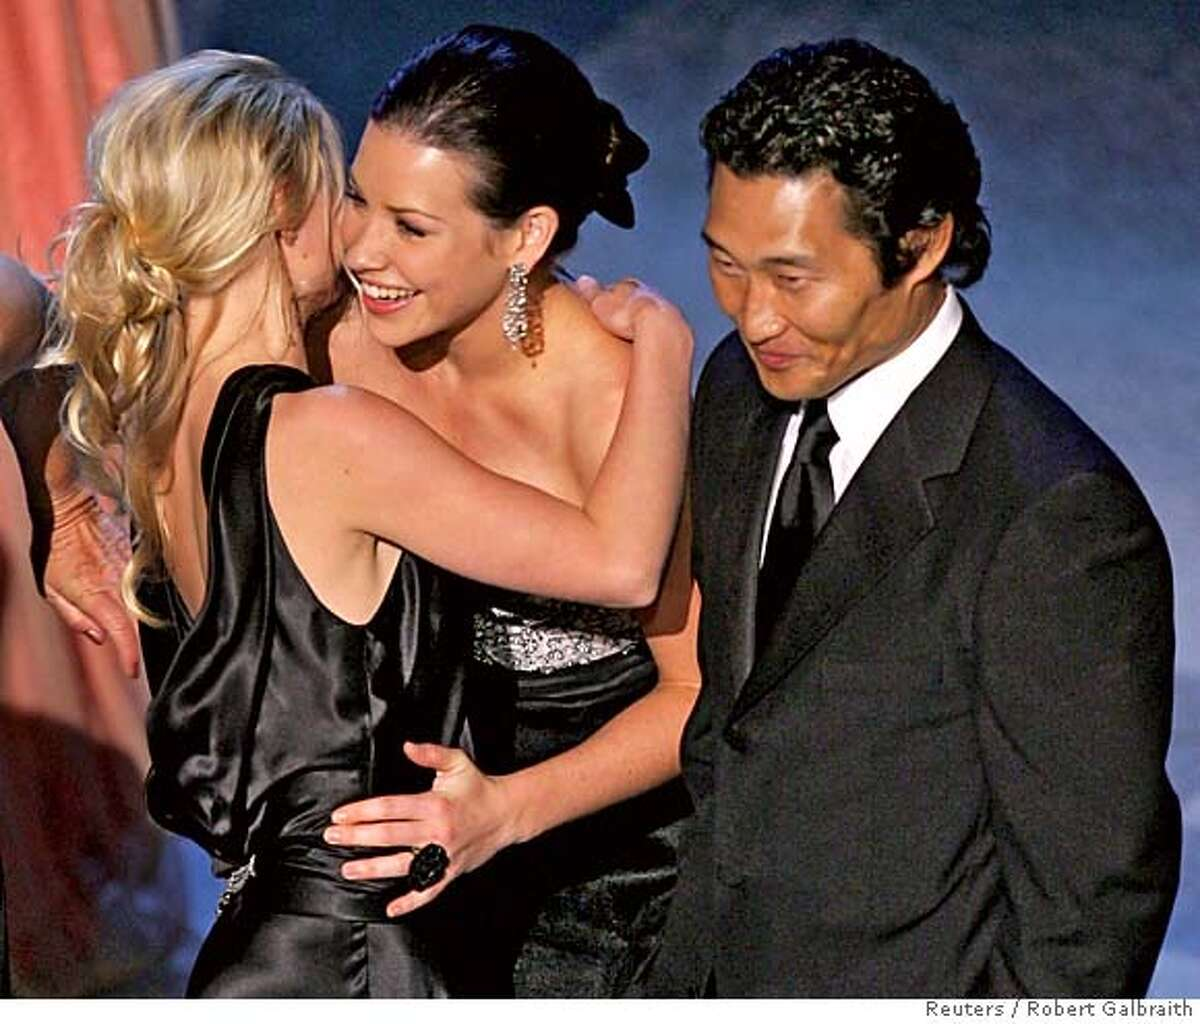 """Cast members of the television program """"Lost"""" (L-R) Emilie de Ravin, Evangeline Lilly and Daniel Dae Kim celebrate at the 57th annual Primetime Emmy Awards at the Shrine Auditorium in Los Angeles September 18, 2005. The show won an Emmy for best Drama Series. REUTERS/Robert Galbraith 0"""